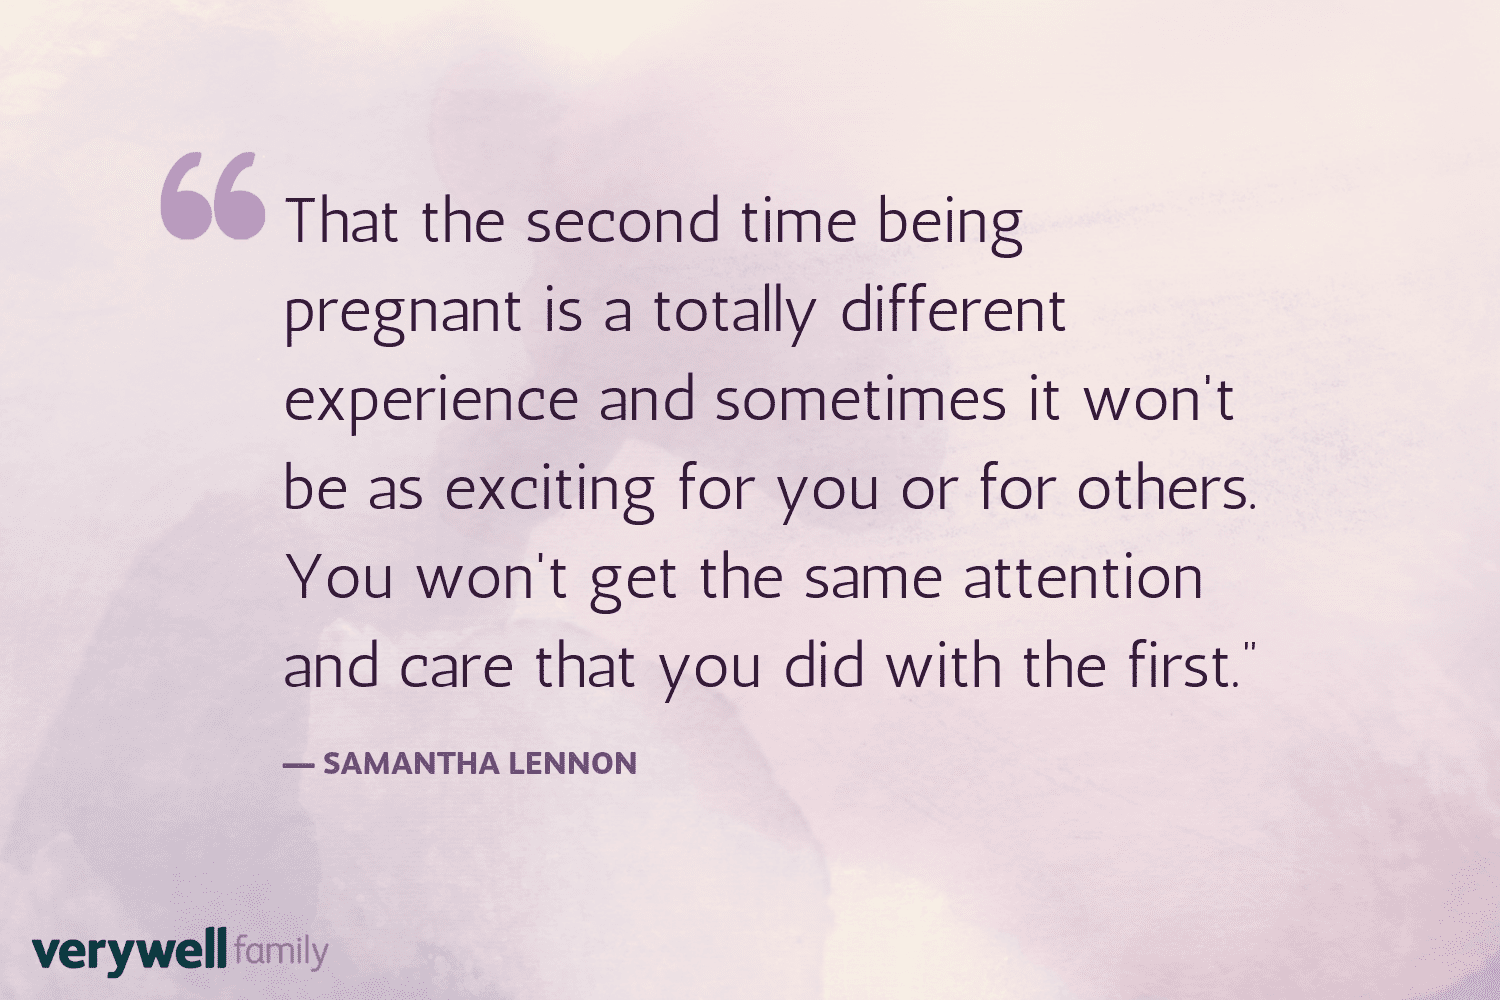 Verywell Family postpartum quote by Samantha Lennon